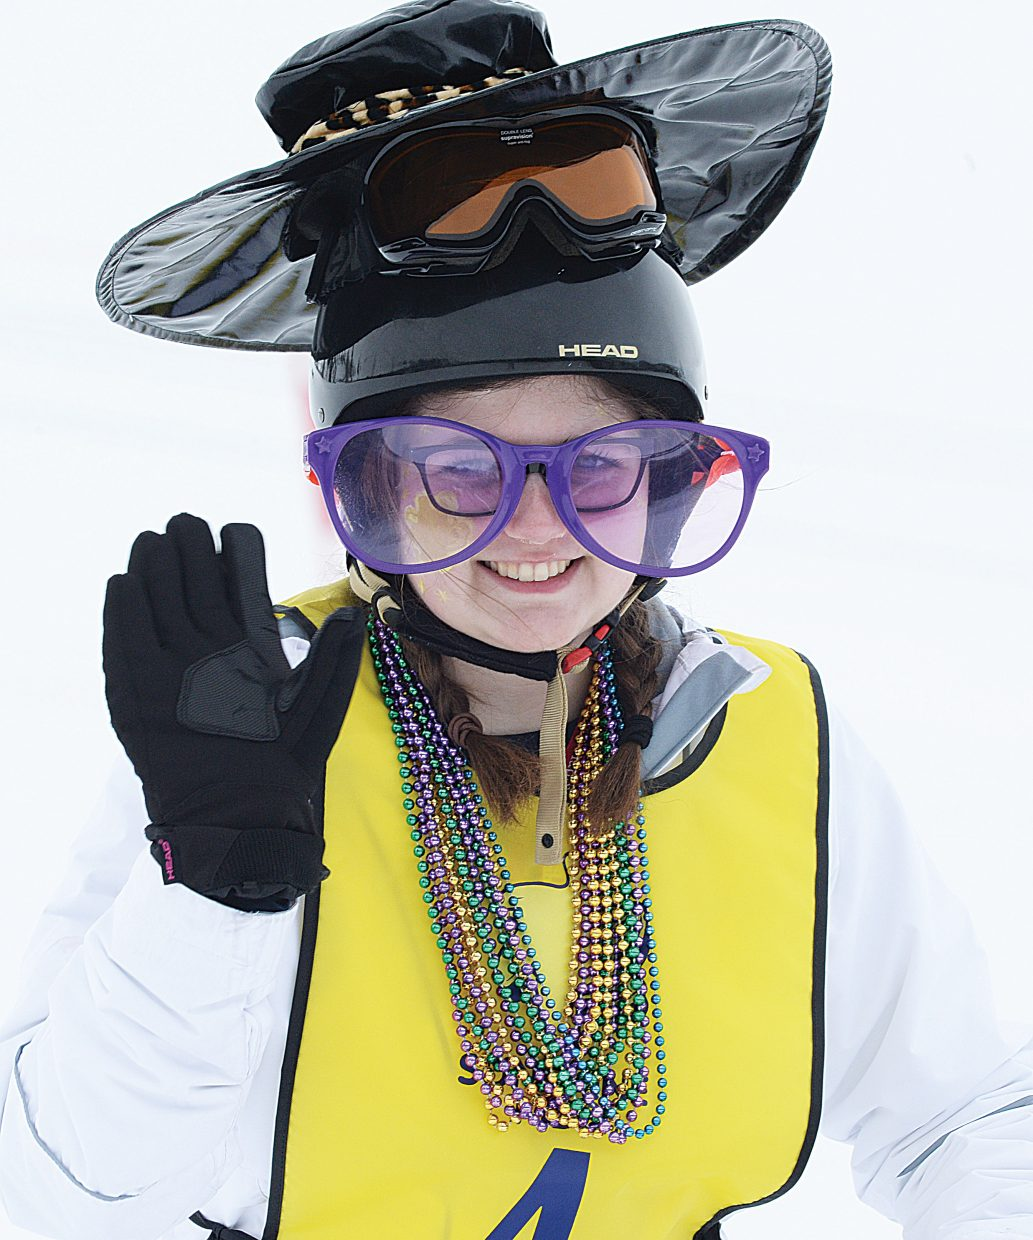 Sam Frank, of Boonton, New Jersey, was diagnosed with leukemia when she was e. Now 15, she is cancer-free and spent the past week learning to ski as part of the Sunshine Kids Foundation event in Steamboat Springs.